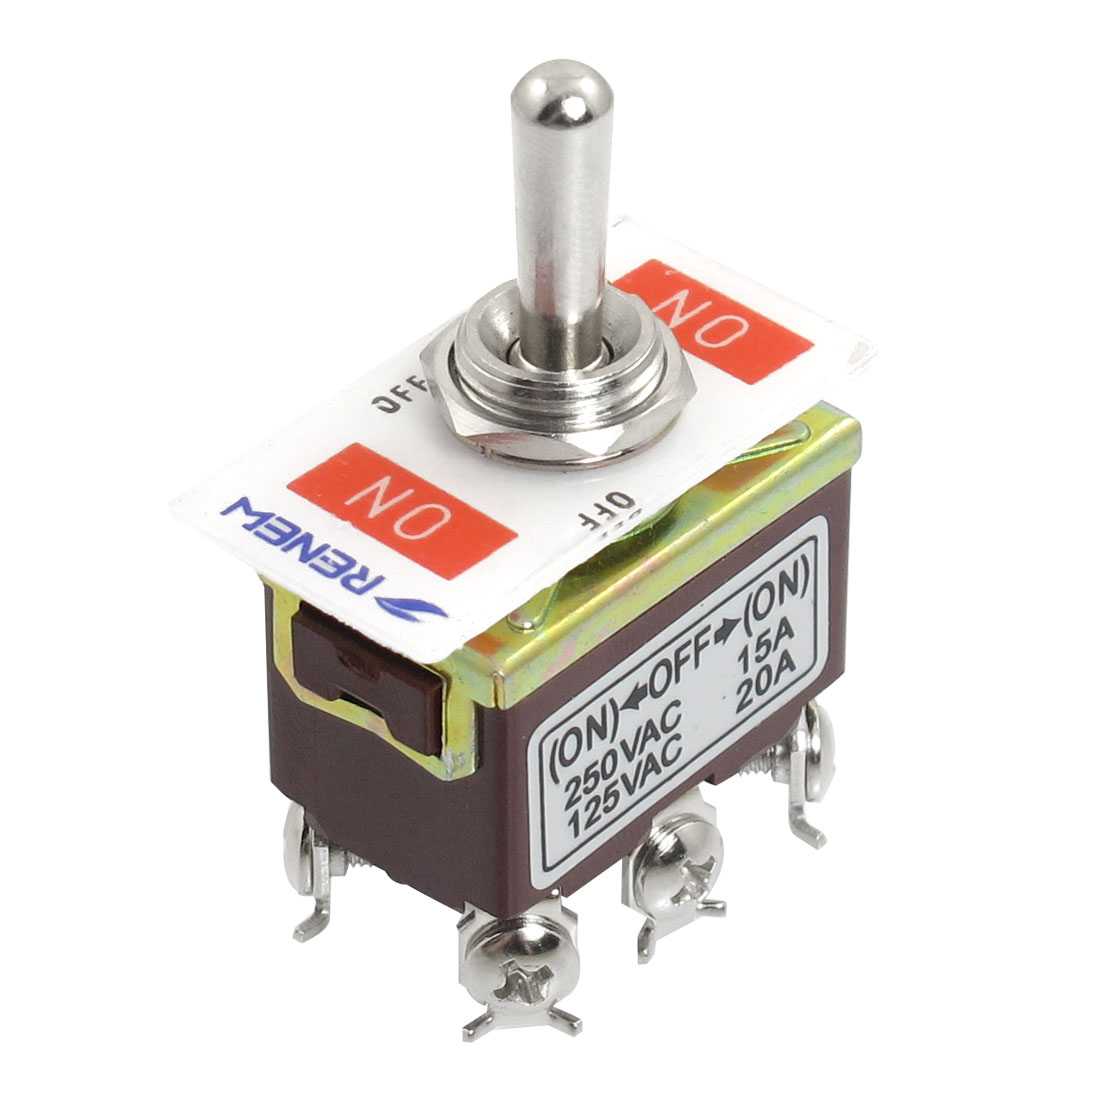 AC 250V/15A 125V/20A ON/OFF/ON 3 Position DPDT Momentary Toggle Switch